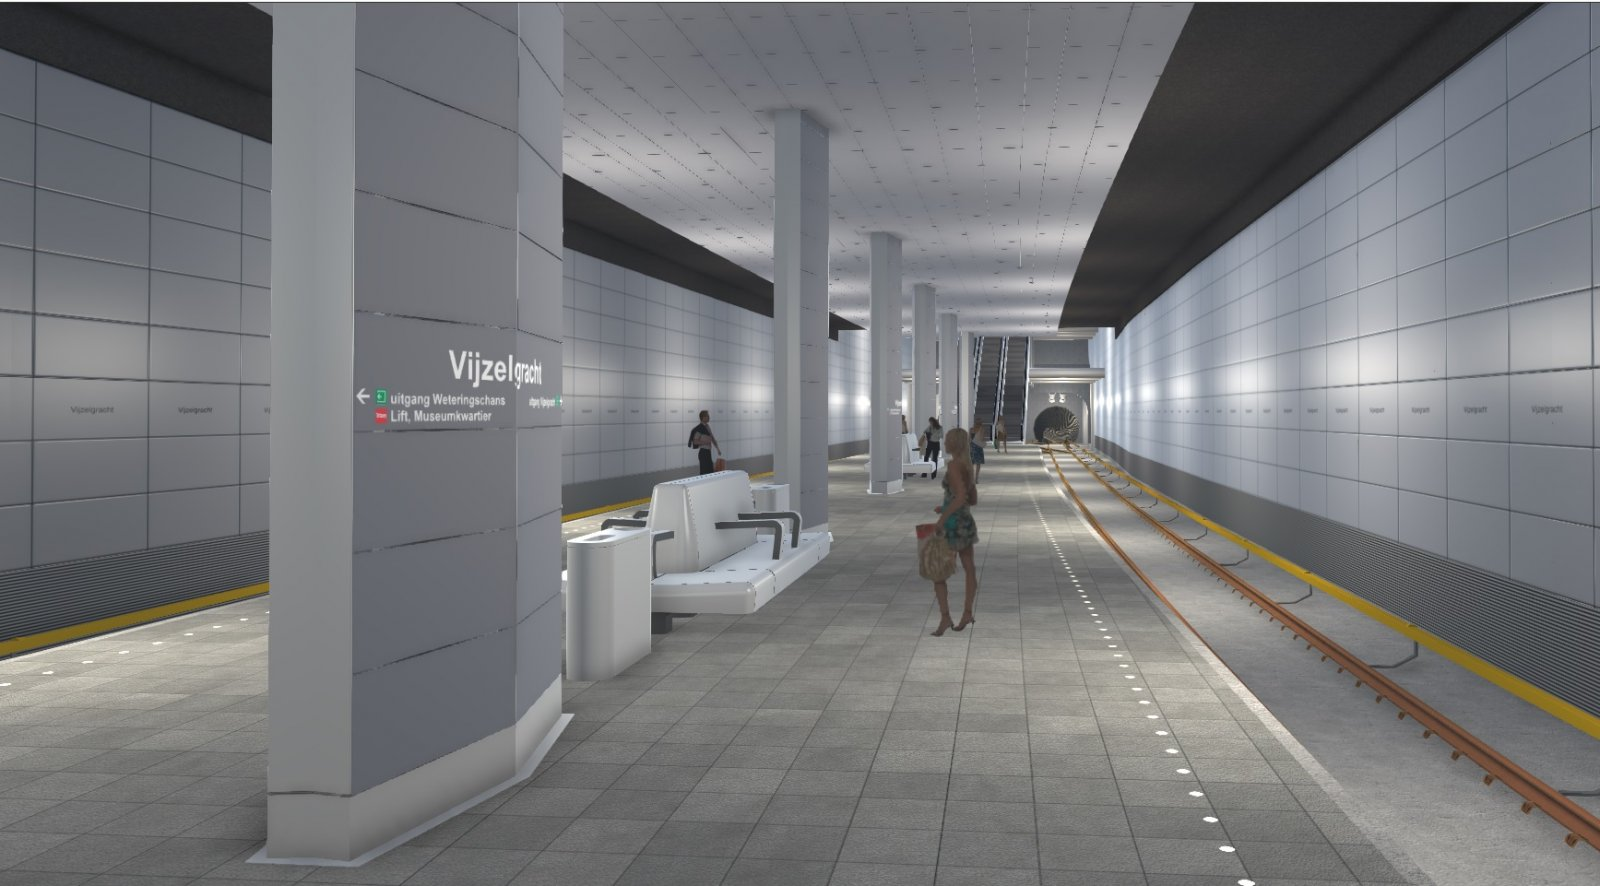 Simulation in a metro station